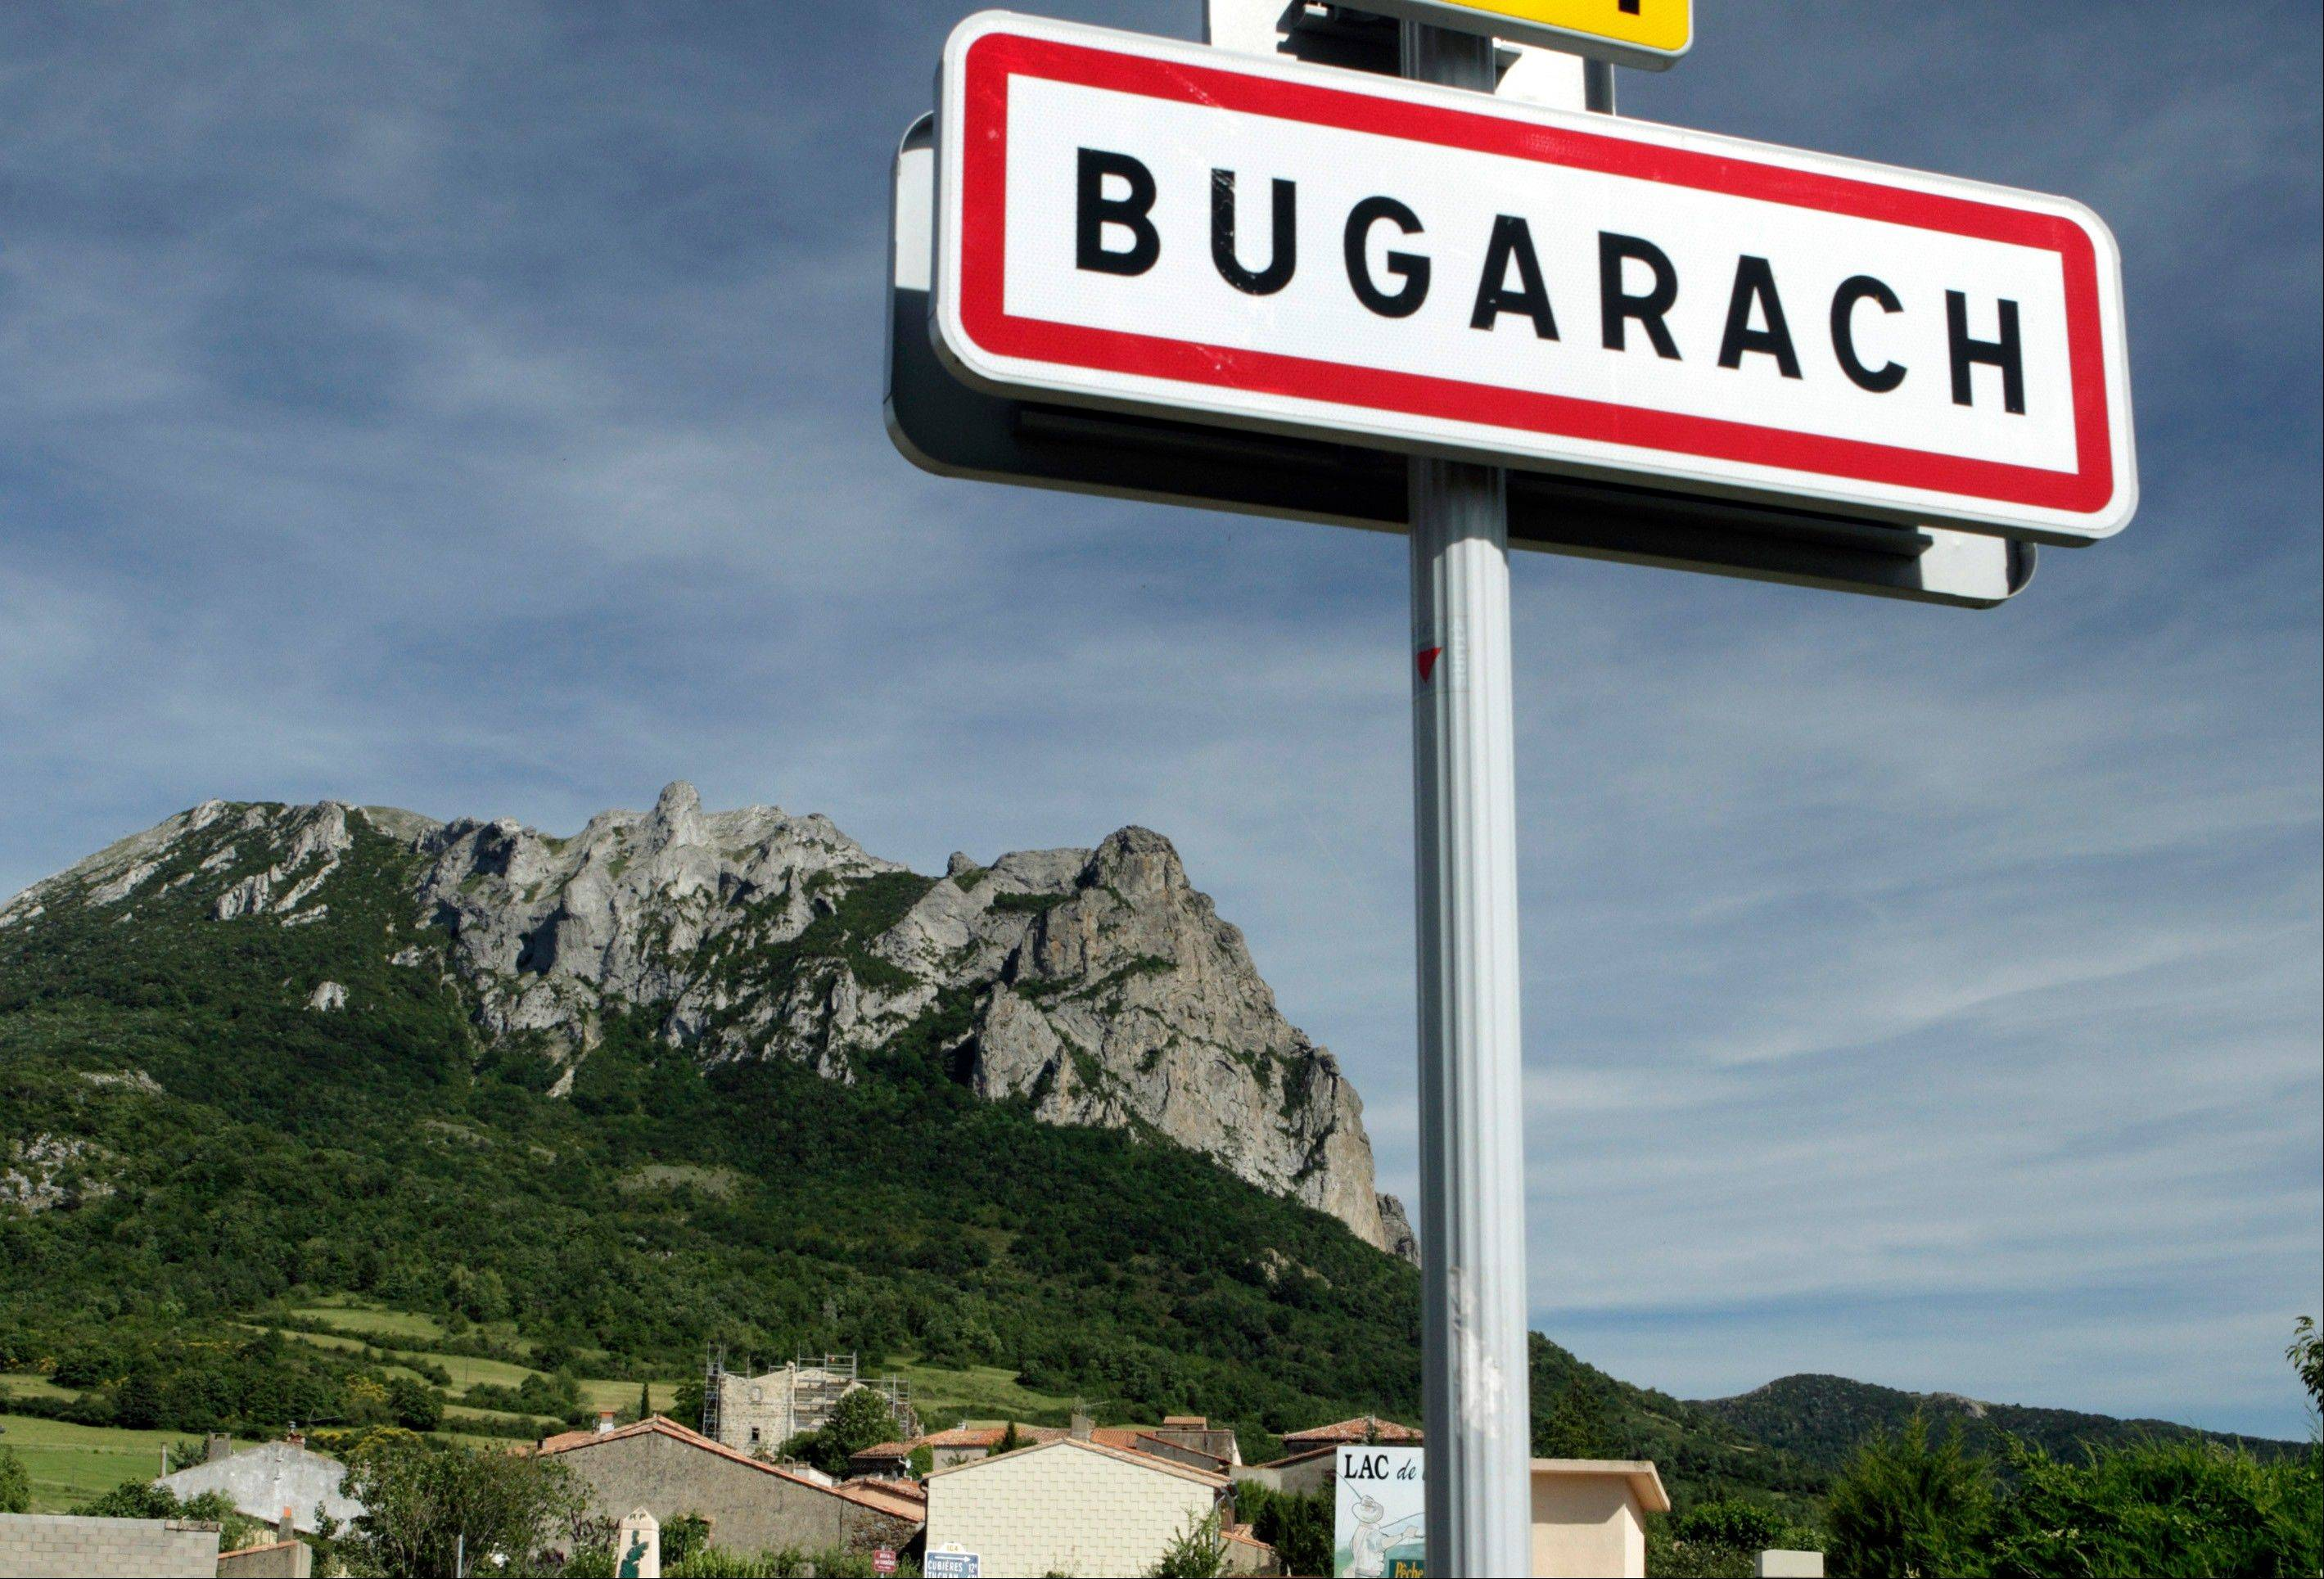 "The Internet has helped feed the end of the world frenzy, spreading rumors that the Bugarach mountain peak in the French Pyrenees is hiding an alien spaceship that will be the sole escape from the destruction. French authorities are blocking access to Bugarach peak from Dec. 19-23 except for the village's 200 residents ""who want to live in peace,"" the local prefect said in a news release."